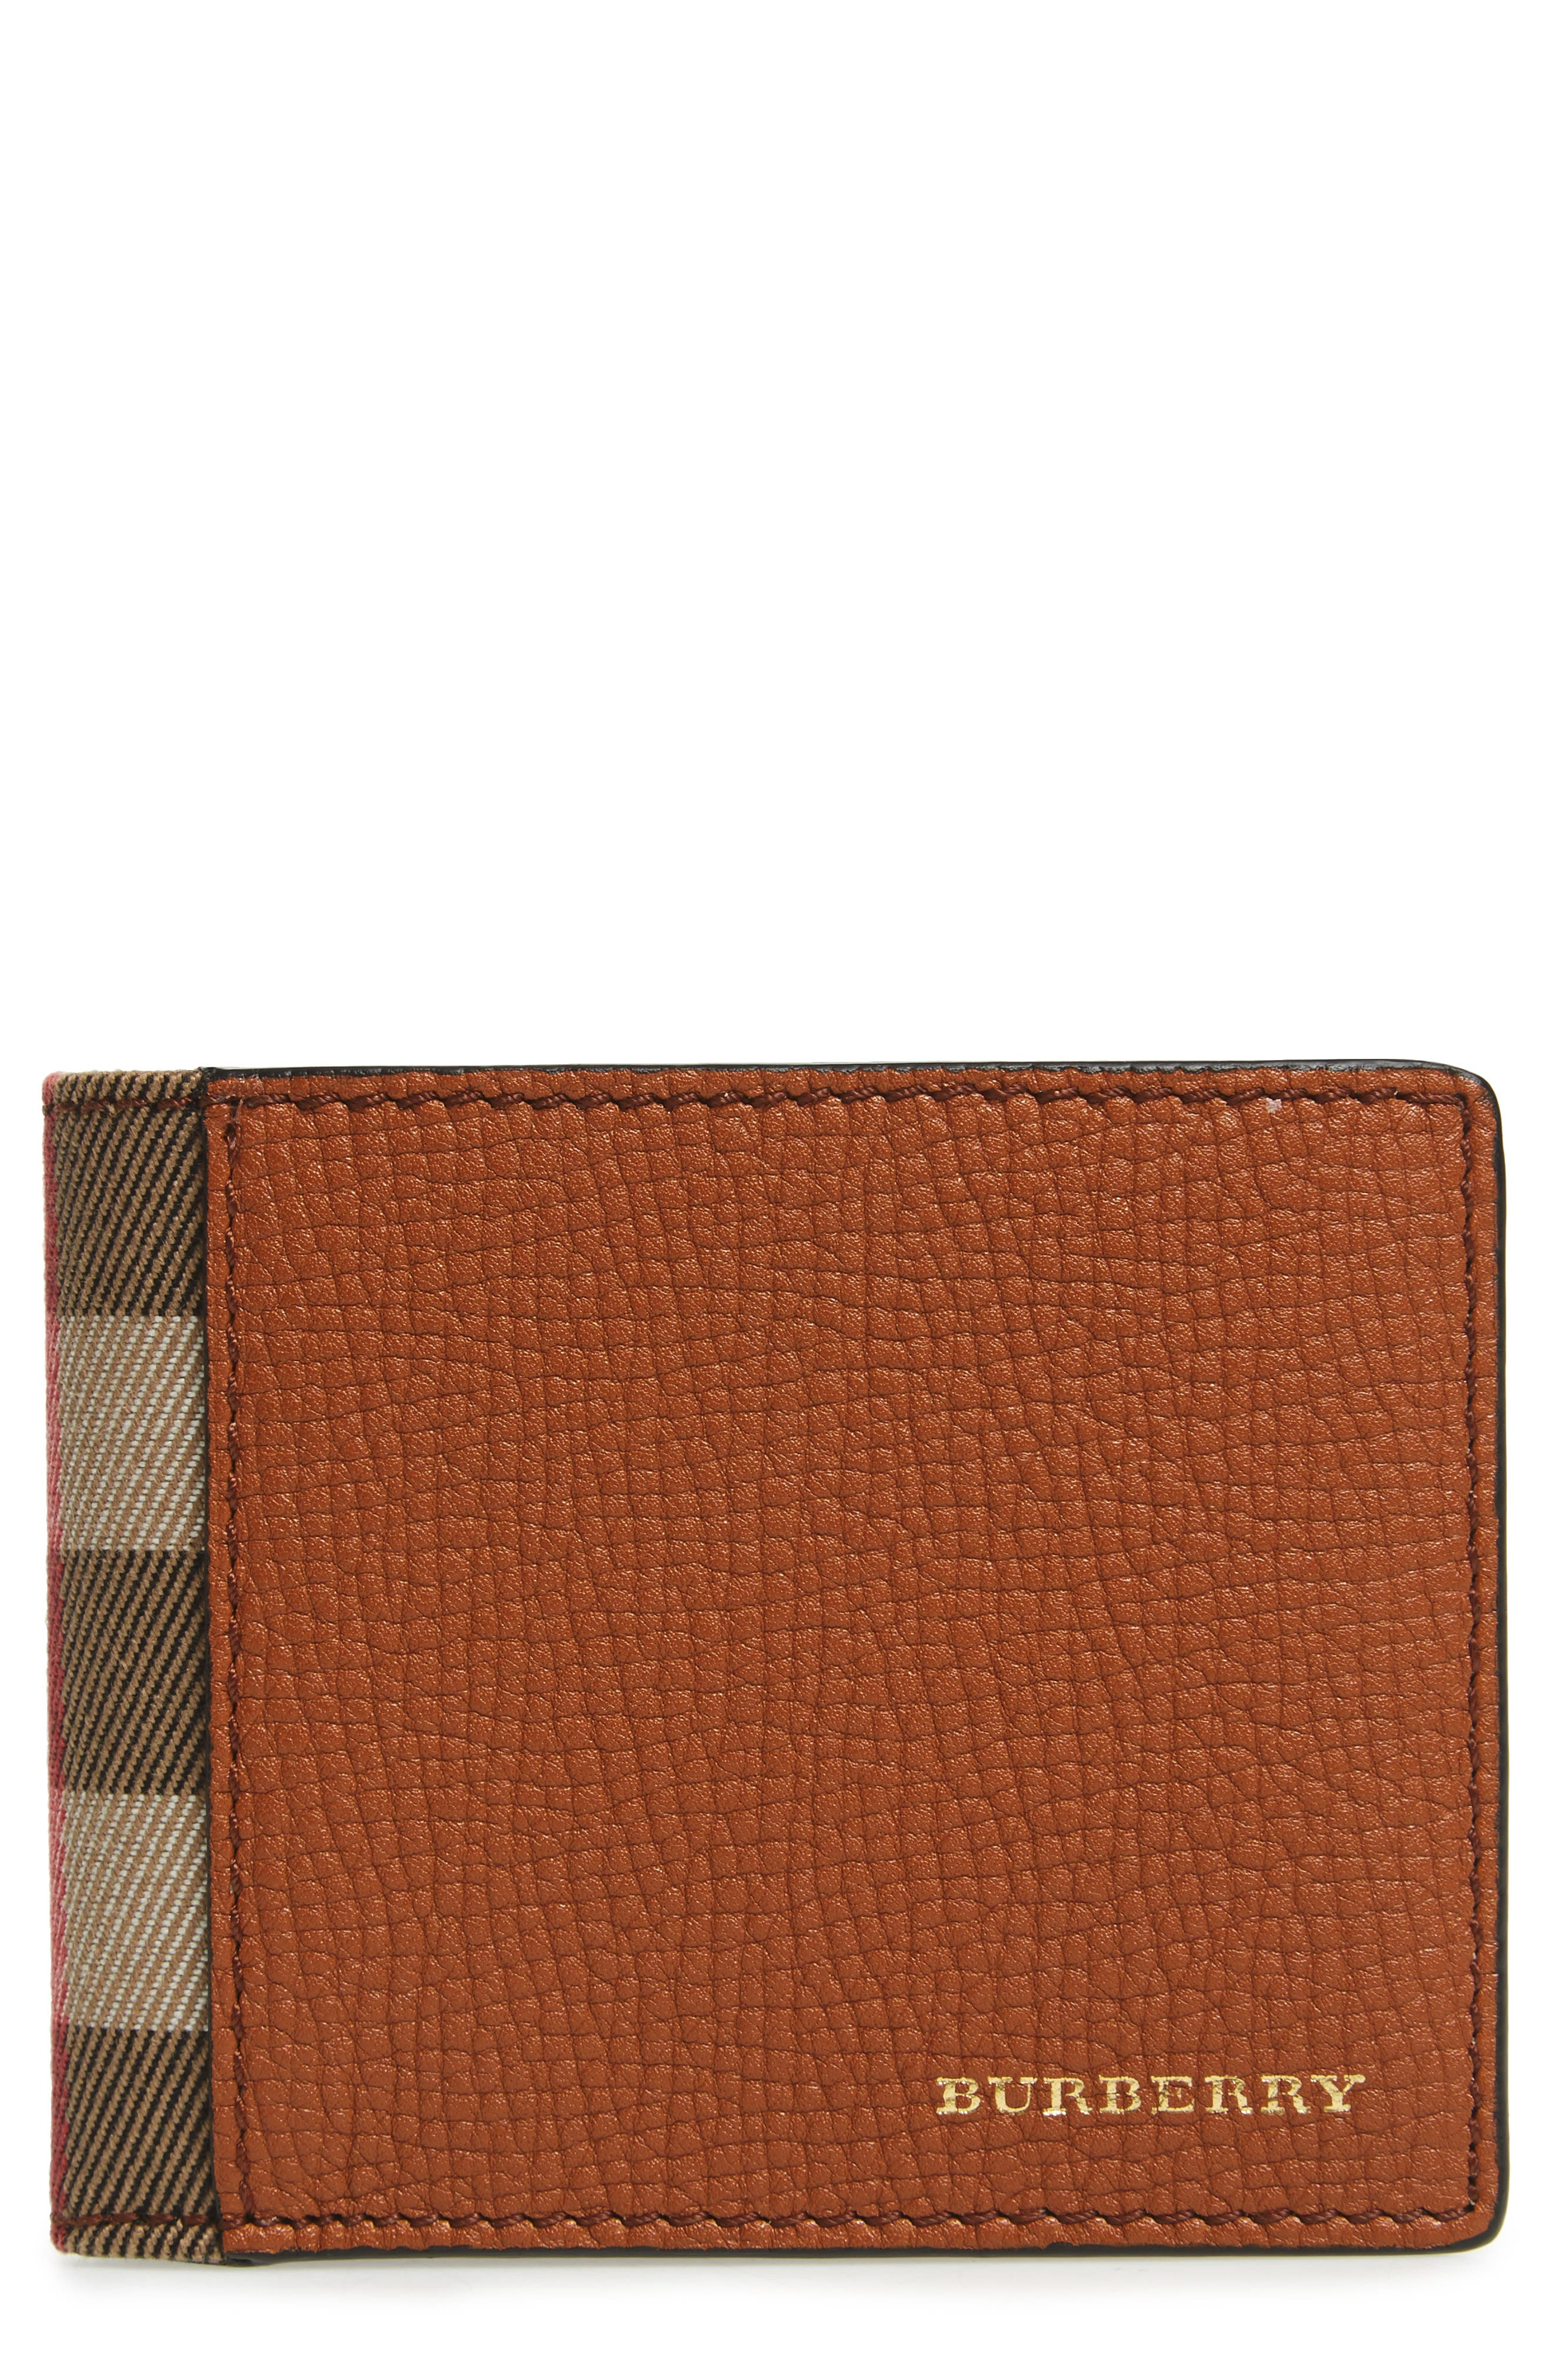 Leather Wallet,                             Main thumbnail 1, color,                             230